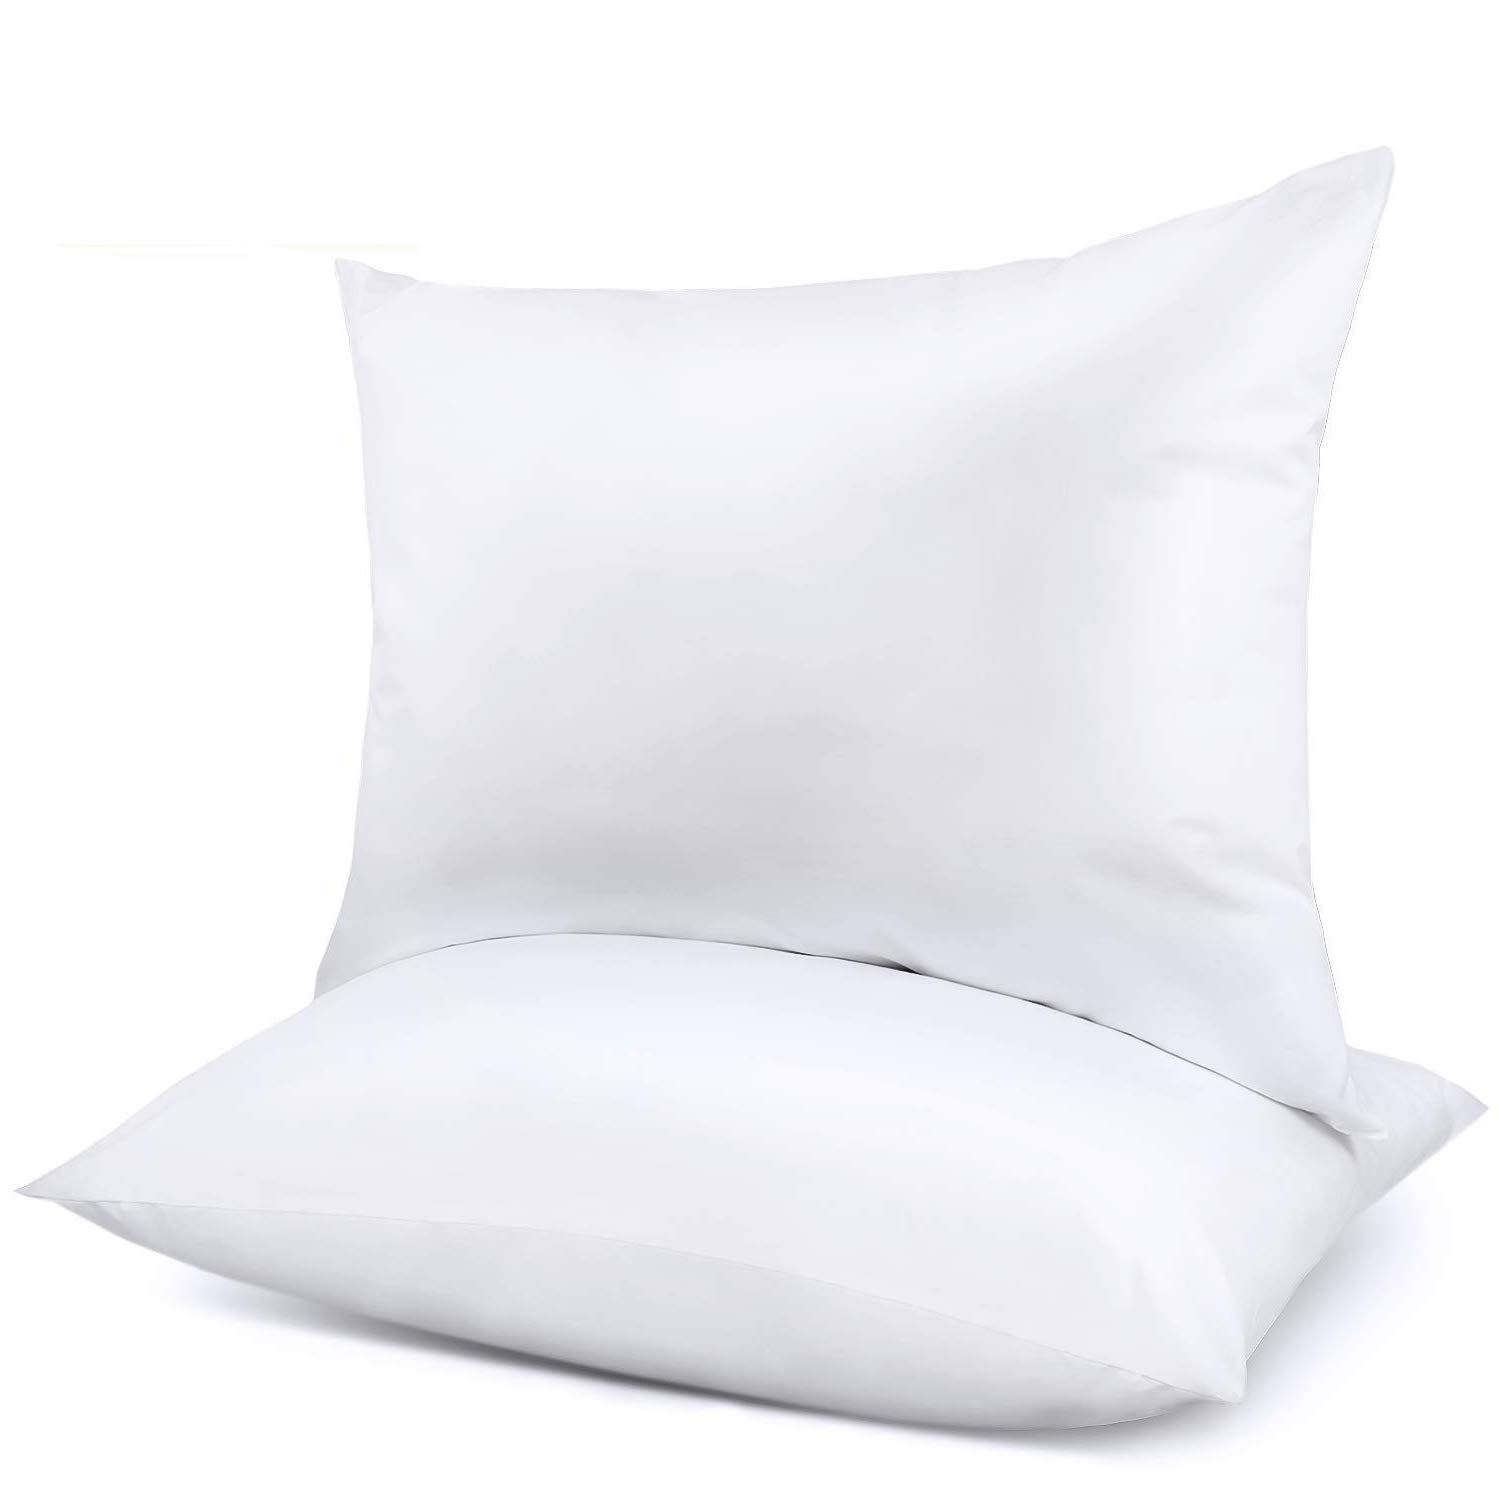 Adoric Pillows for Sleeping, 2 Pack Bed Pillows Hotel Collection 100% Breathable Cotton Cover Skin-Friendly Pillows, White Standard